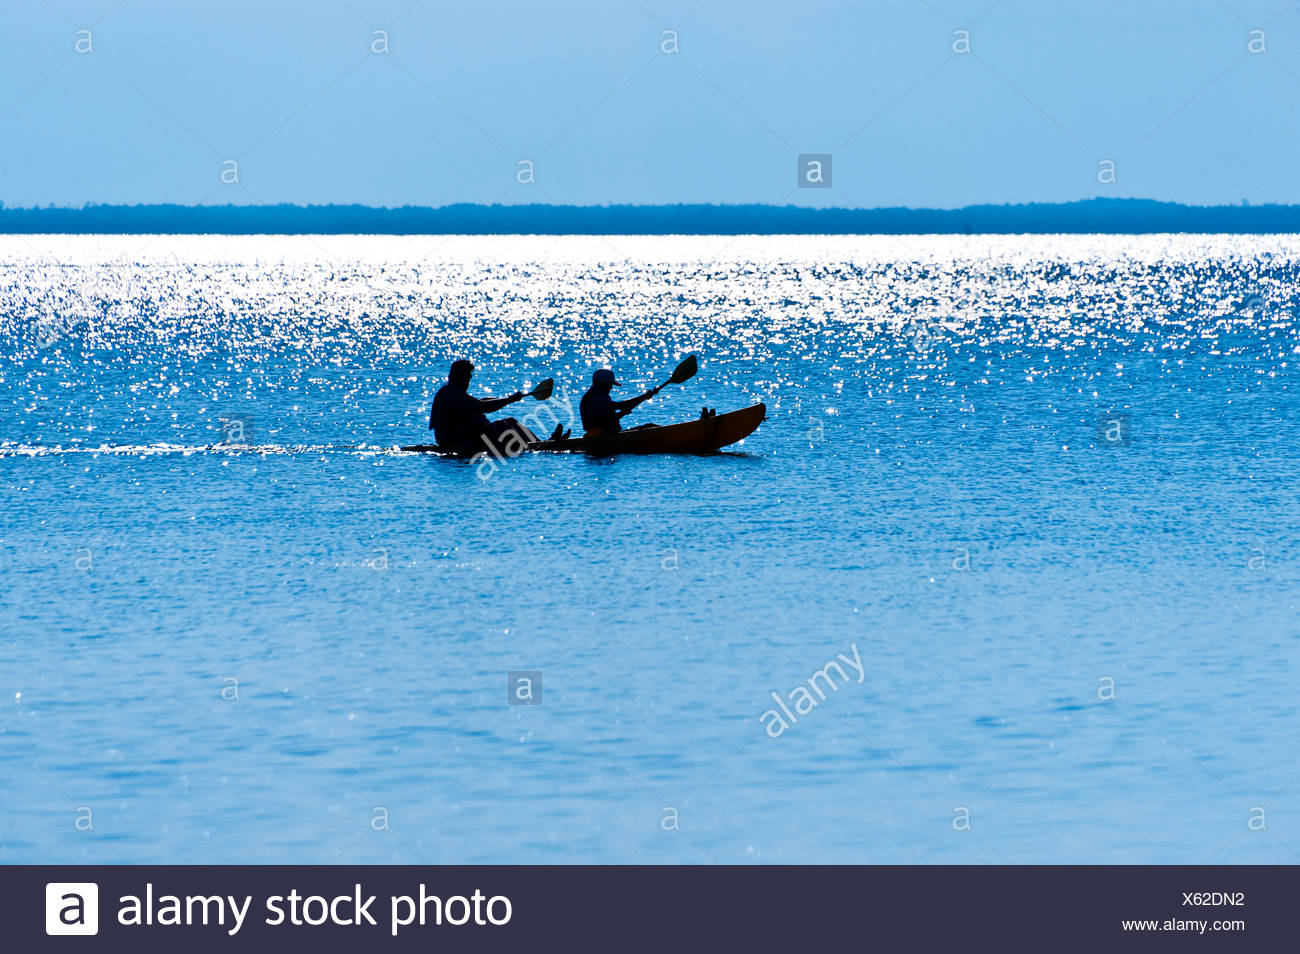 Silhouette of tandem kayakers, Outer Banks, North Carolina - Stock Image